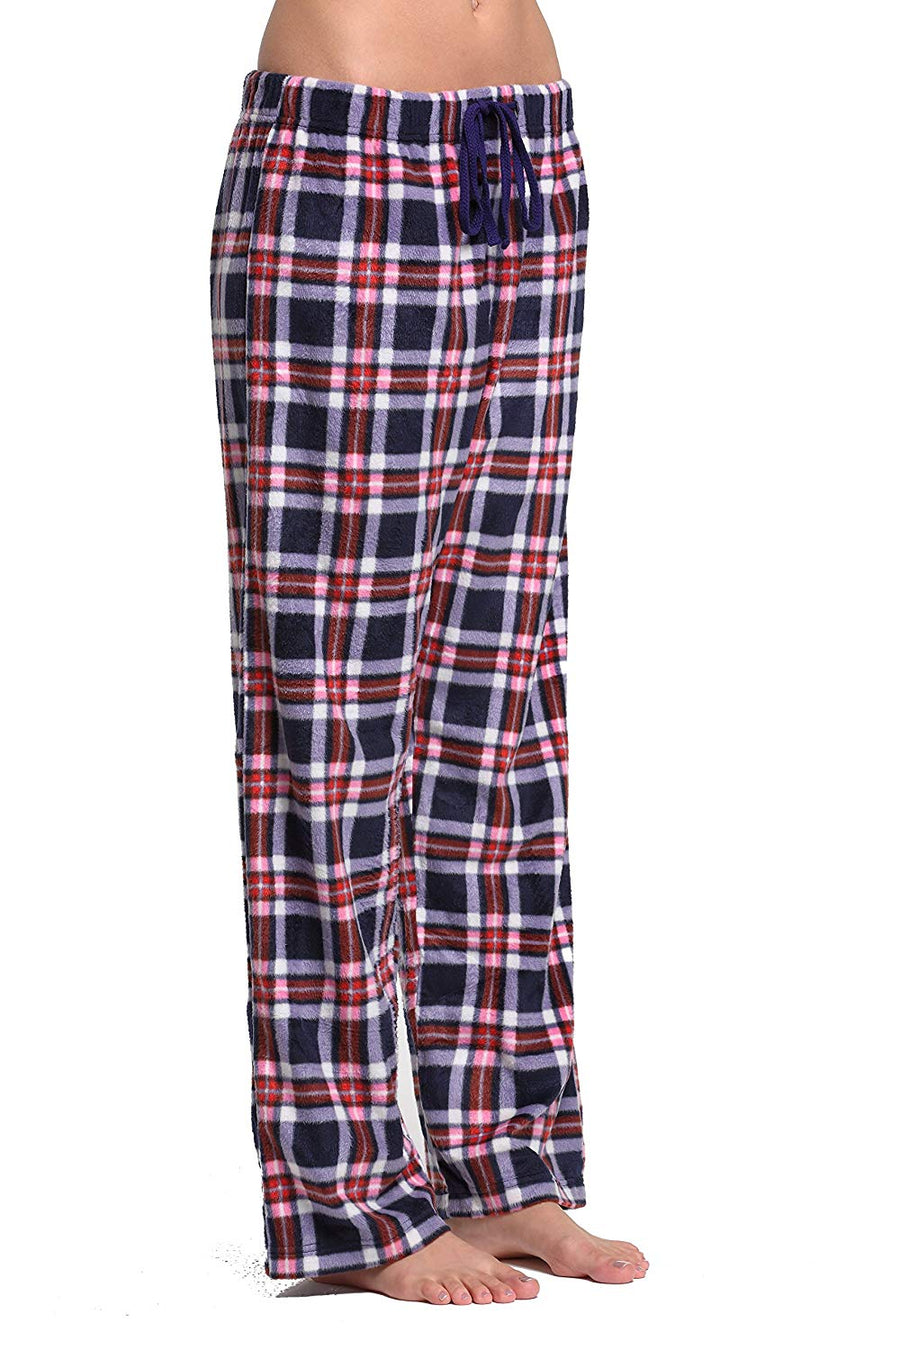 CYZ Women's Fleece Sleep Pajama Pant